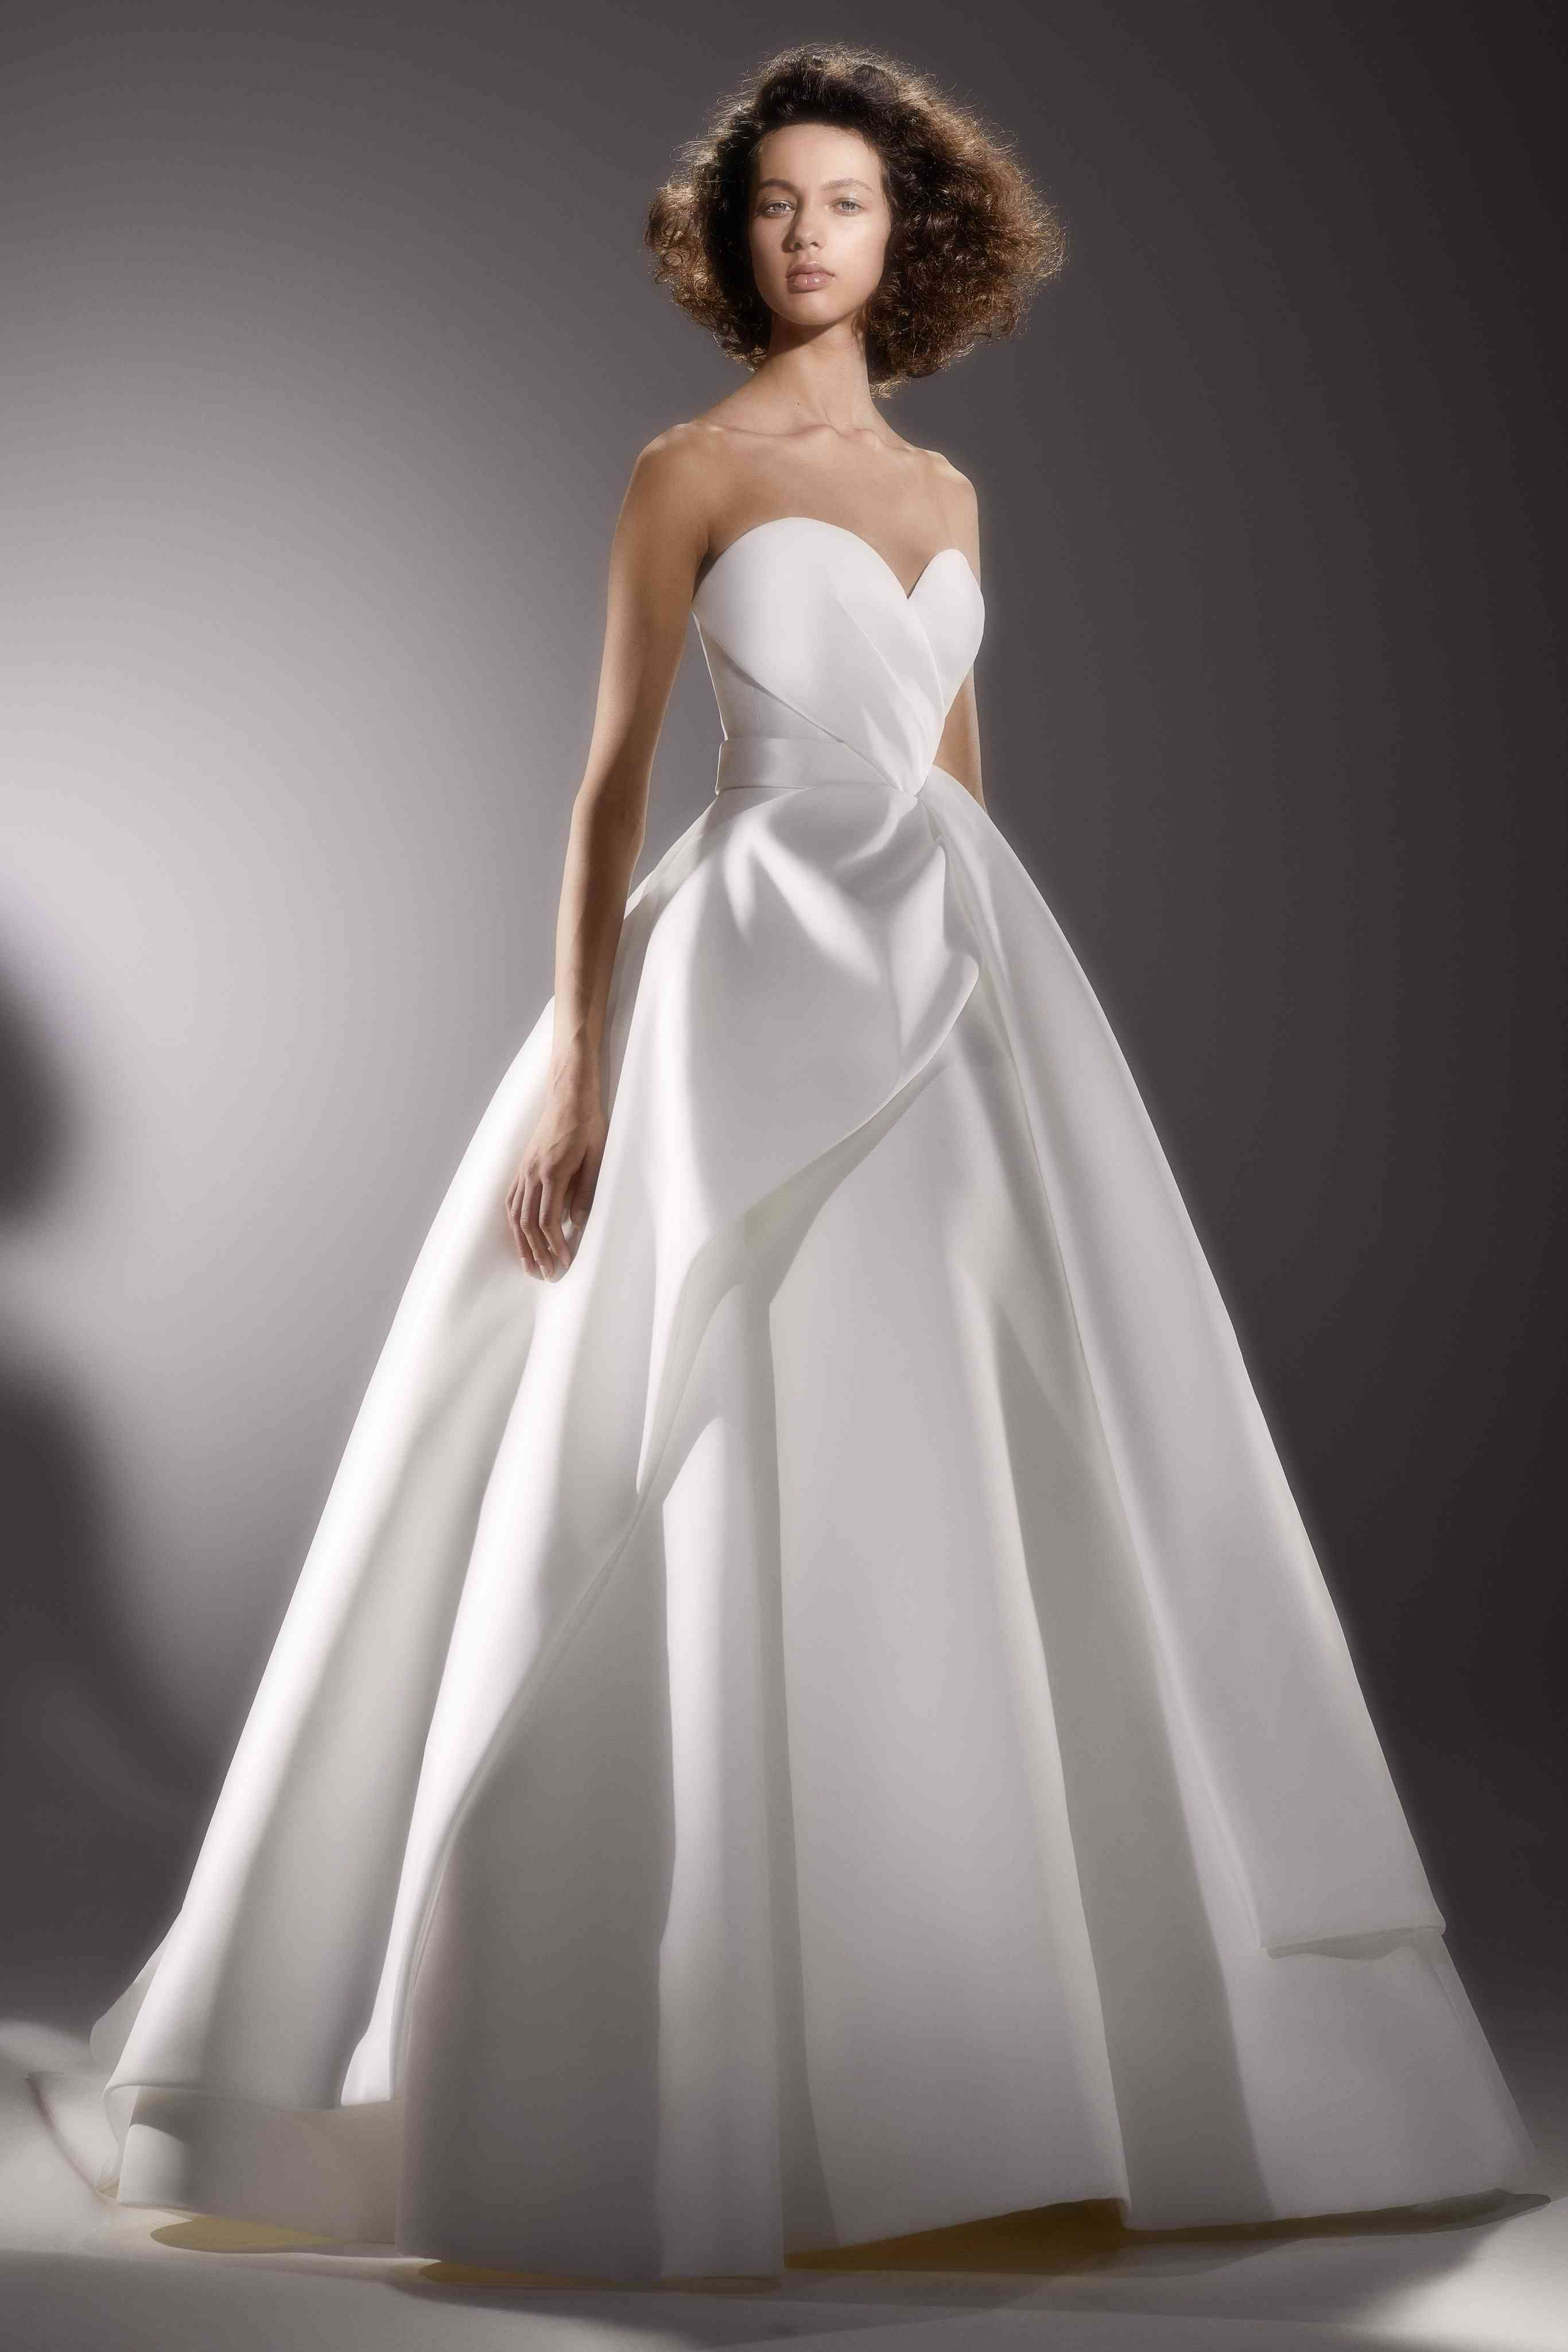 Mariage by Viktor&Rolf 2020